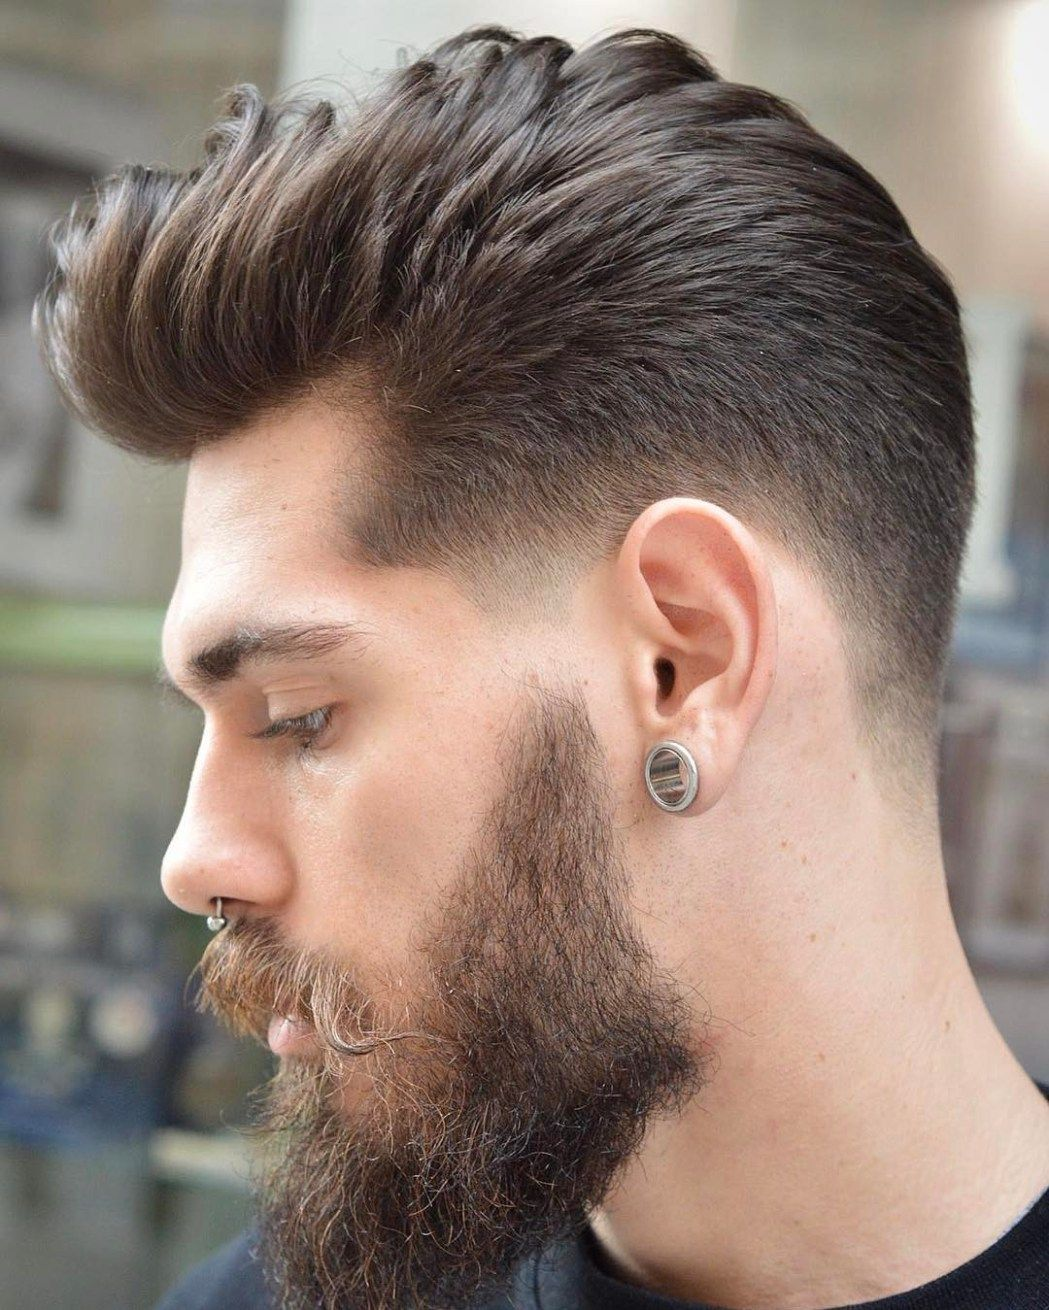 20 Types Of Fade Haircuts That Are Trendy Now Types Of Fade Haircut Fade Haircut Mens Haircuts Fade